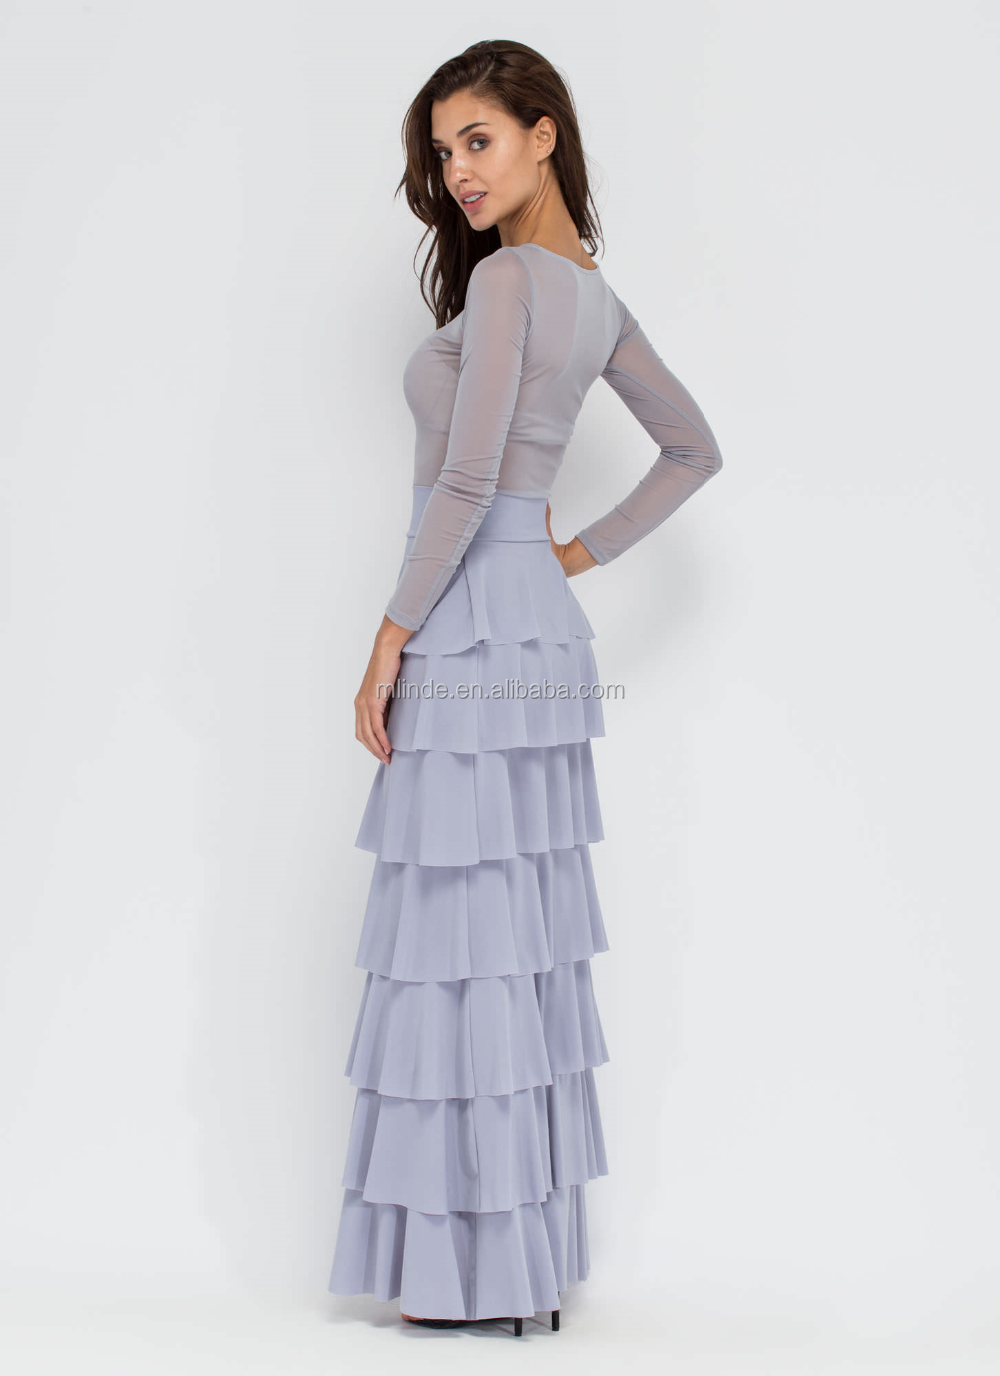 dd94e115871691 Wholesale new fashion factory price tiered layer ruffled maxi skirt high  quality elegant long lady skirt manufacturer